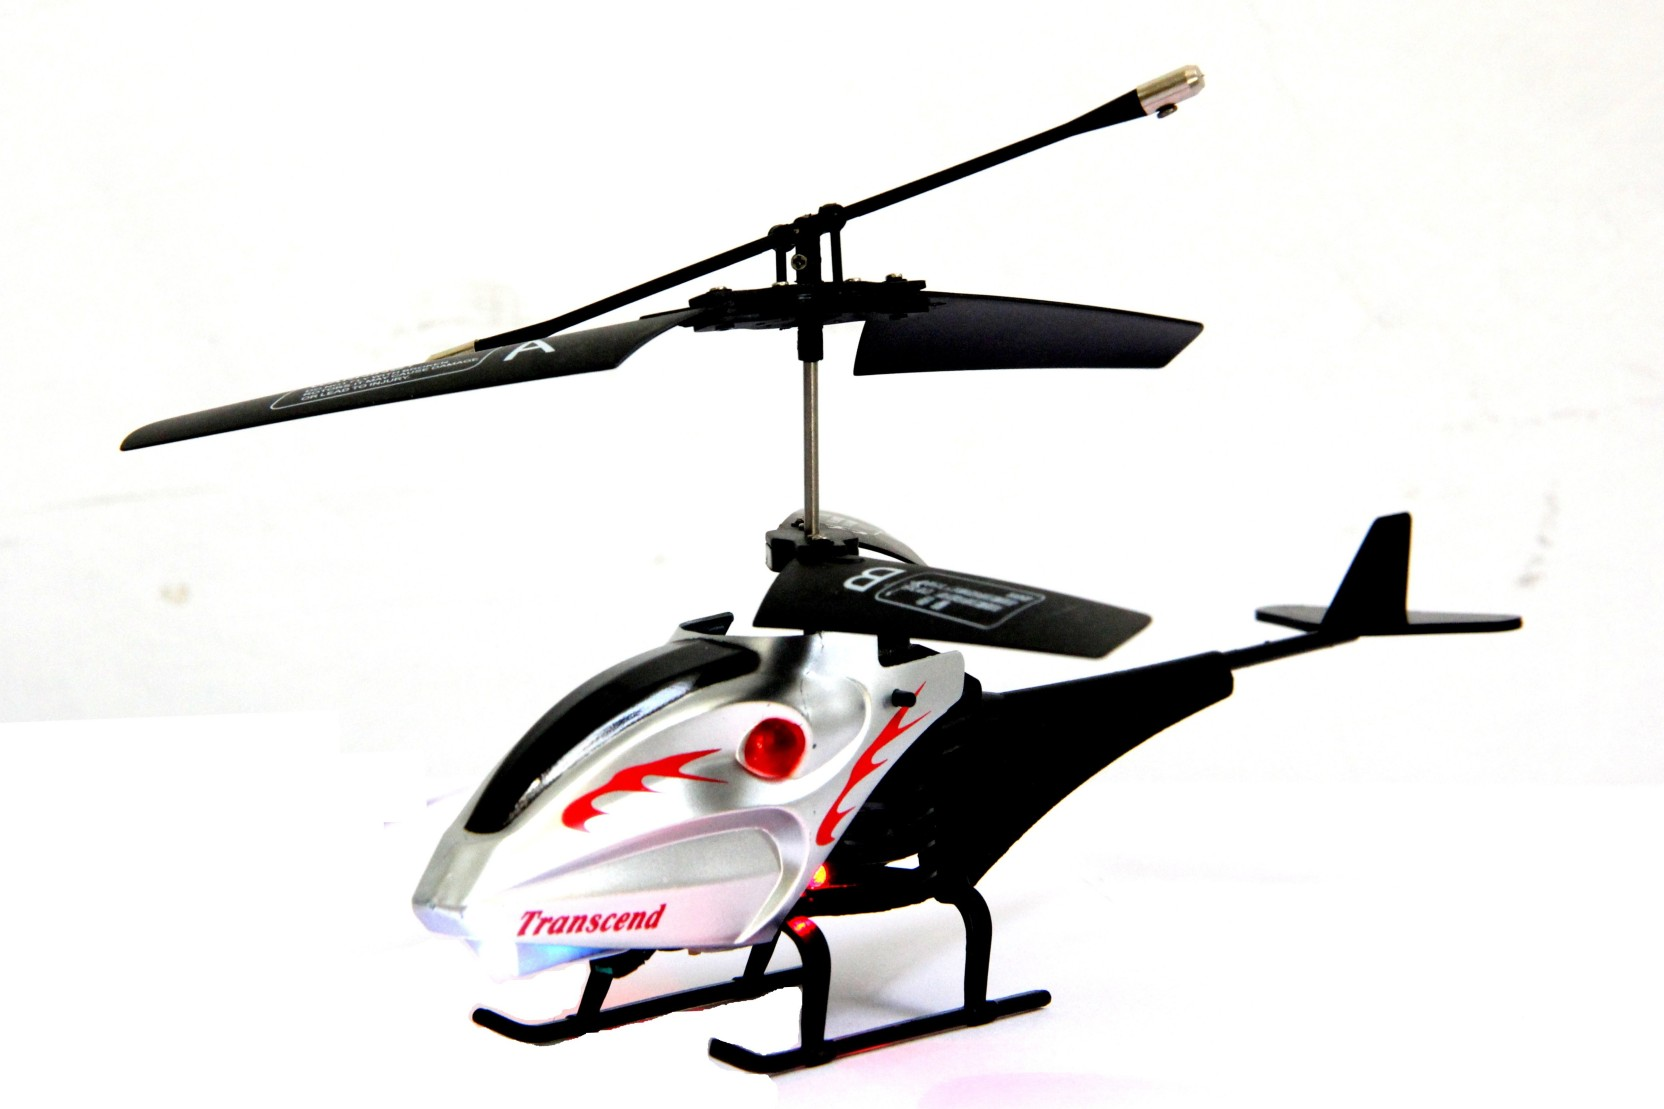 Volitation Xy 112 Siver 5 Channel Rc Helicopter Lionel Trains Supero Remote Control Switches No Home